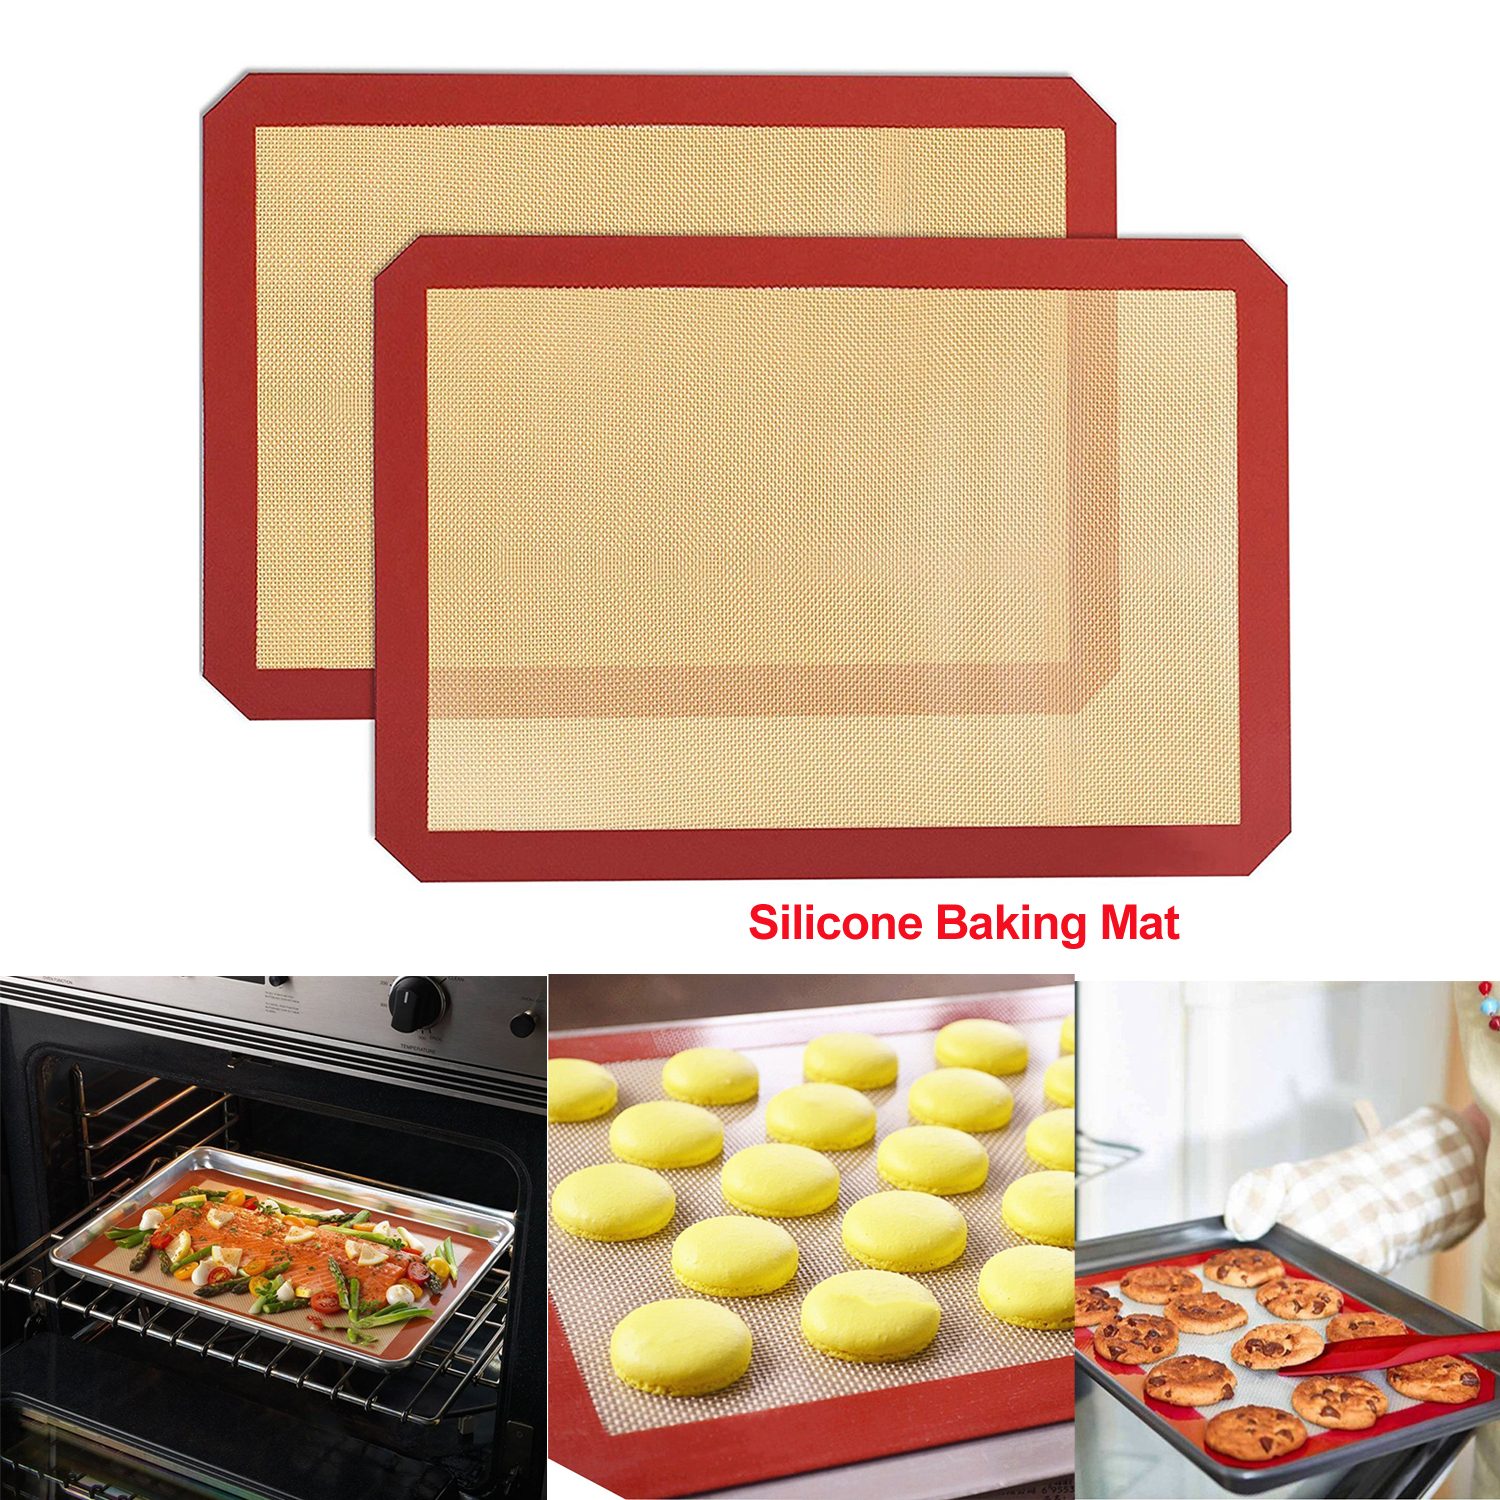 Large Size For Cake Cookie Macaron Less Expensive Considerate Hot Non-stick Silicone Baking Mat Pad 42*29.5cm Baking Sheet Glass Fiber Rolling Dough Mat